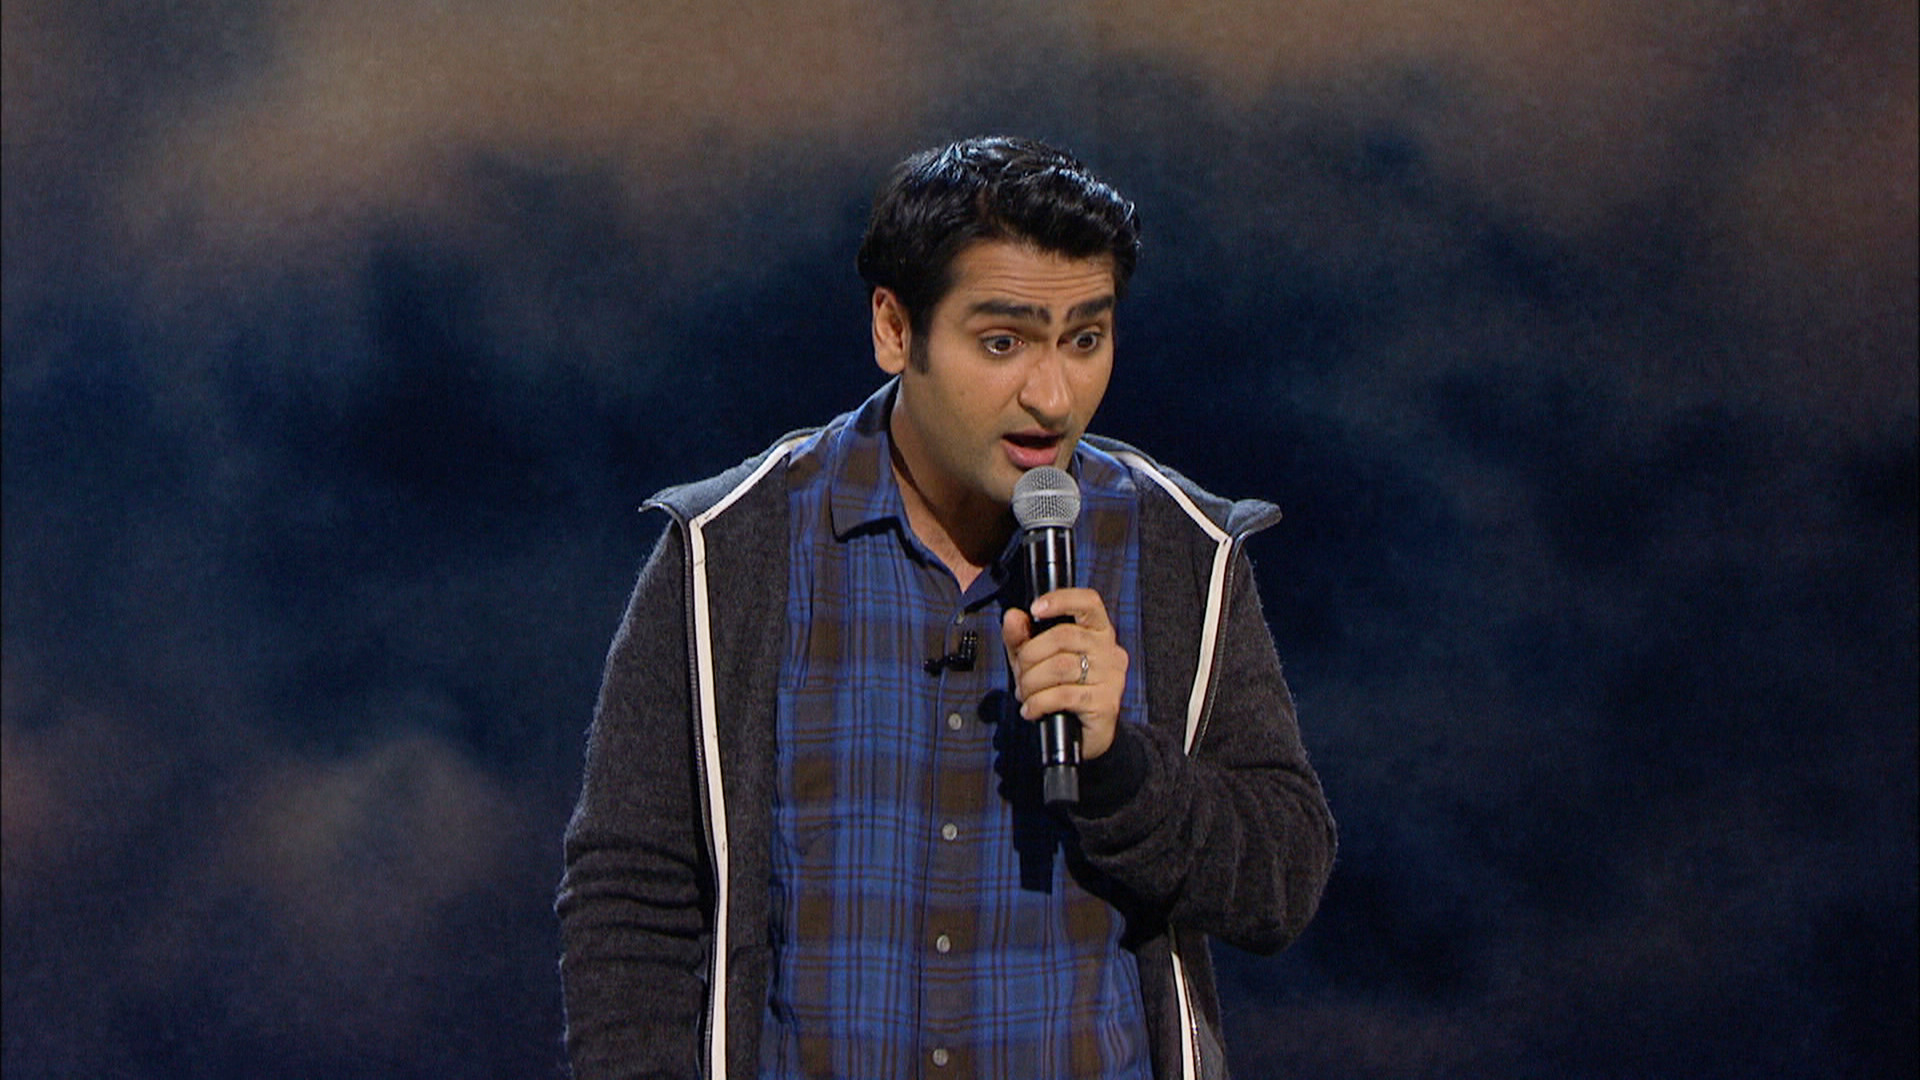 Uncensored - Kumail Nanjiani - Sneaky Cat